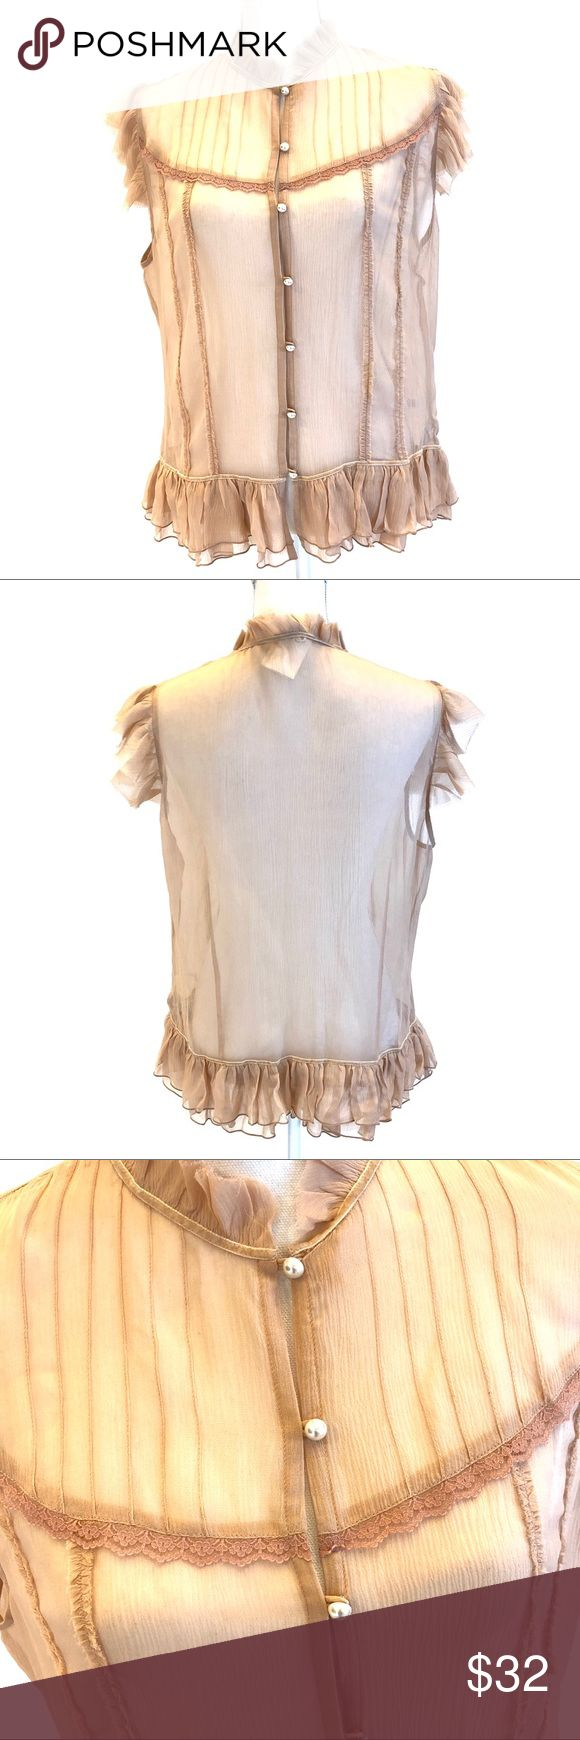 """BANANA REPUBLIC Sheer Button Front Top NWT. Banana Republic Sheer Button Front Top, Sz XL. Gray edge sleeves and ruffle hem. 100% silk. Approx. 21.5"""" pit to pit, 25"""" total length, laying flat. Banana Republic Tops"""